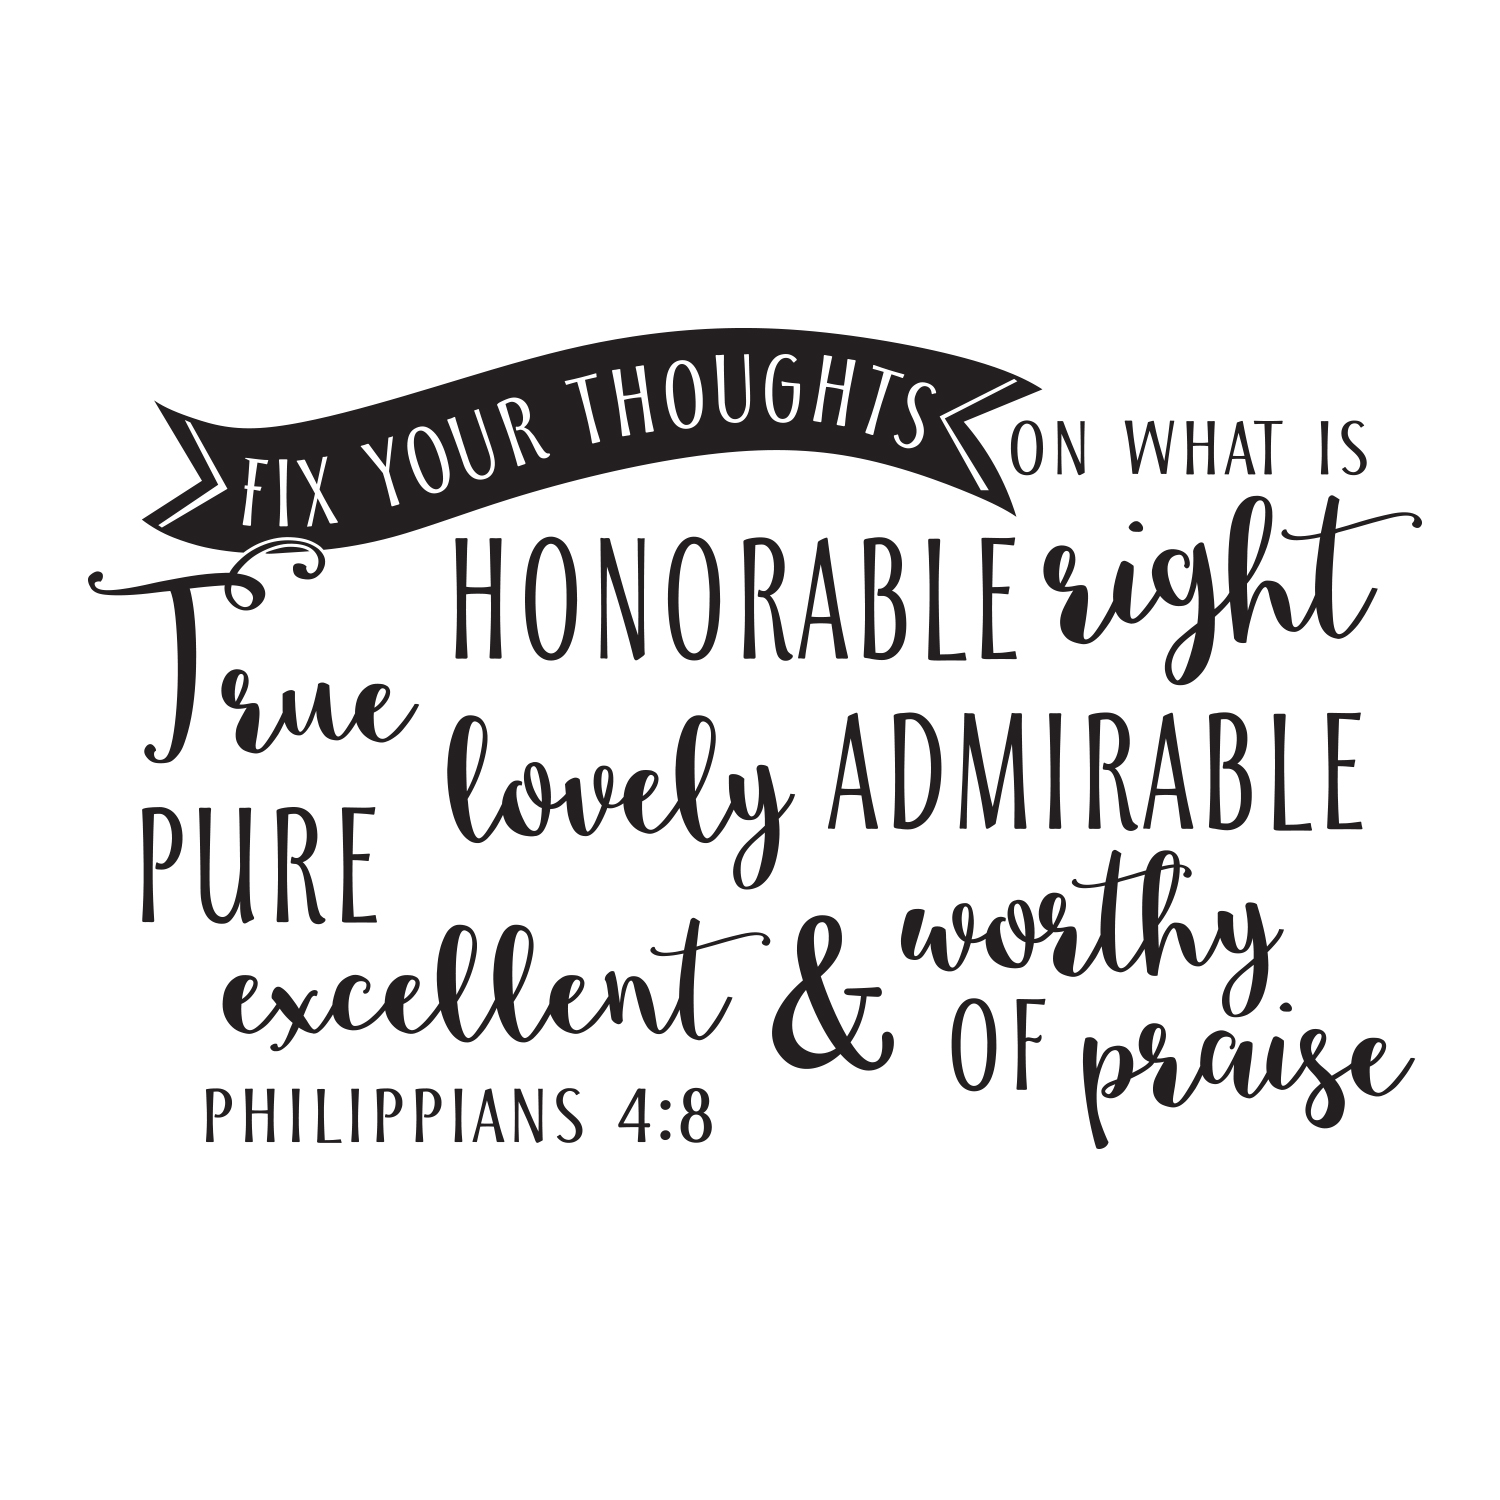 Philippians 4v8 Vinyl Wall Decal 3 Fix your thoughts on